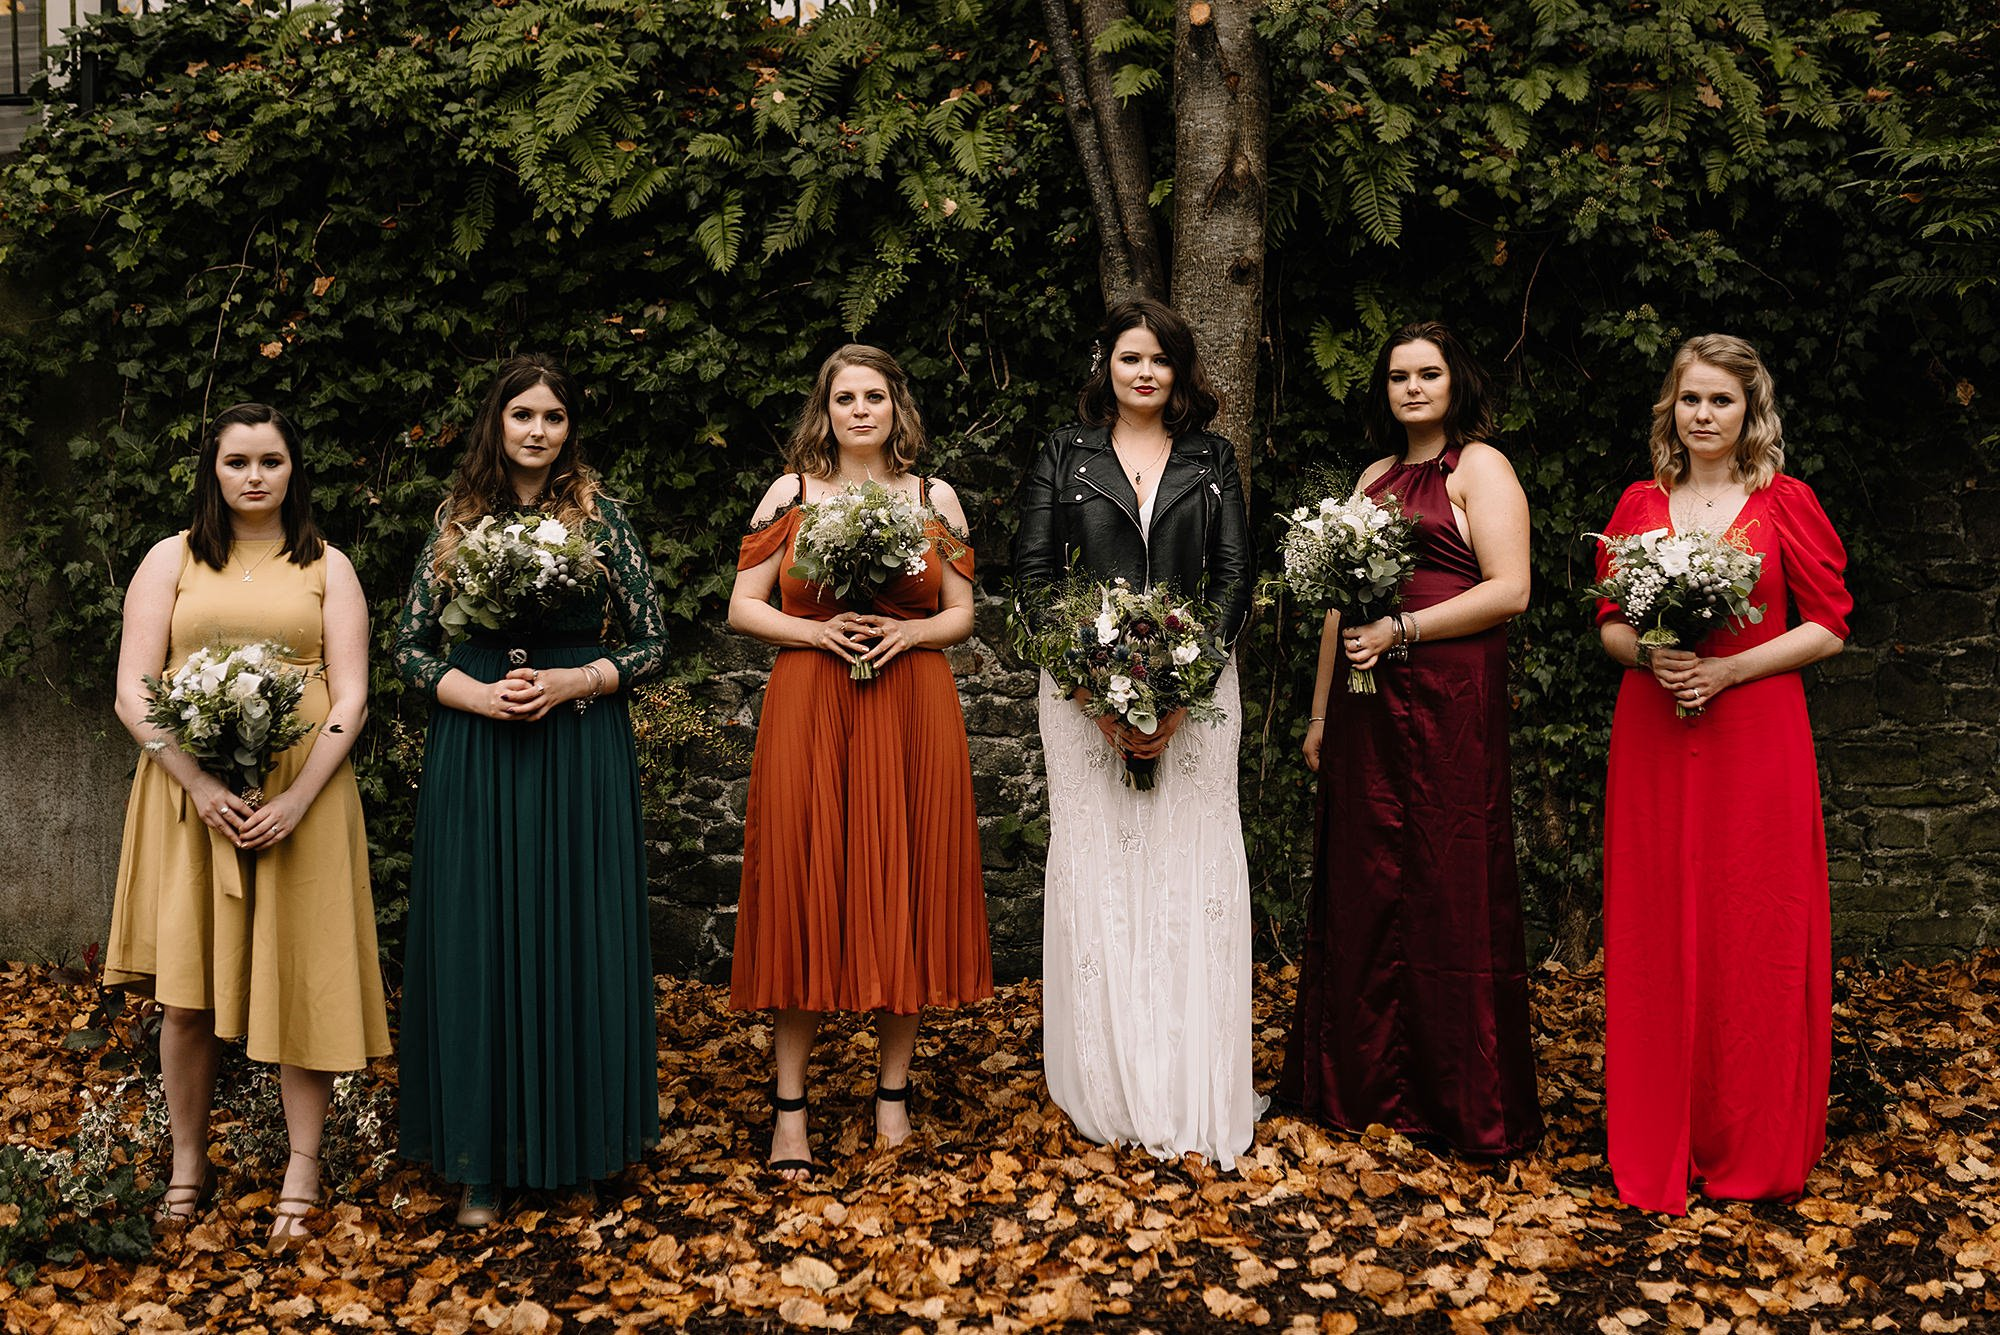 How To Find The Perfect Bridesmaid Dress